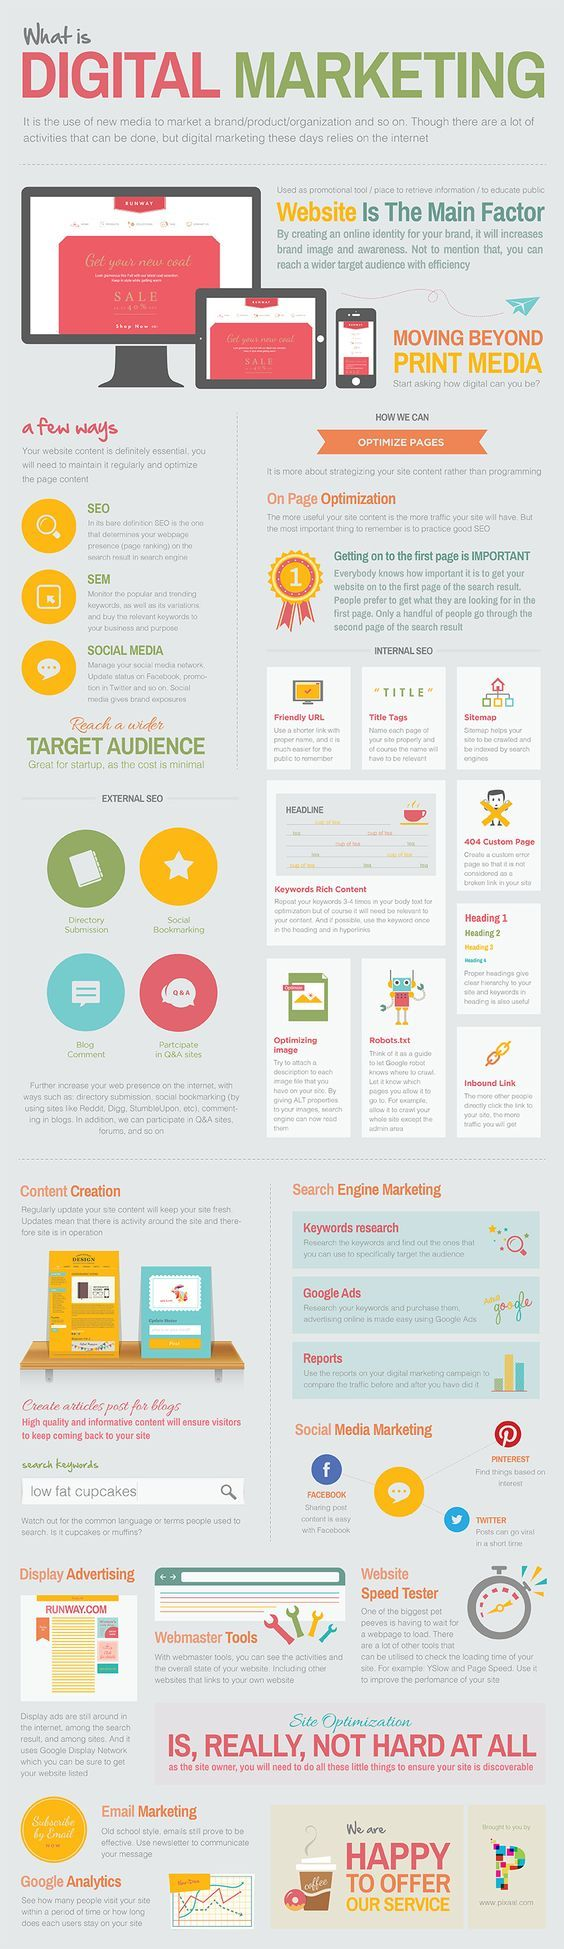 Digital marketing tips that all small business owners can benefit from knowing!: